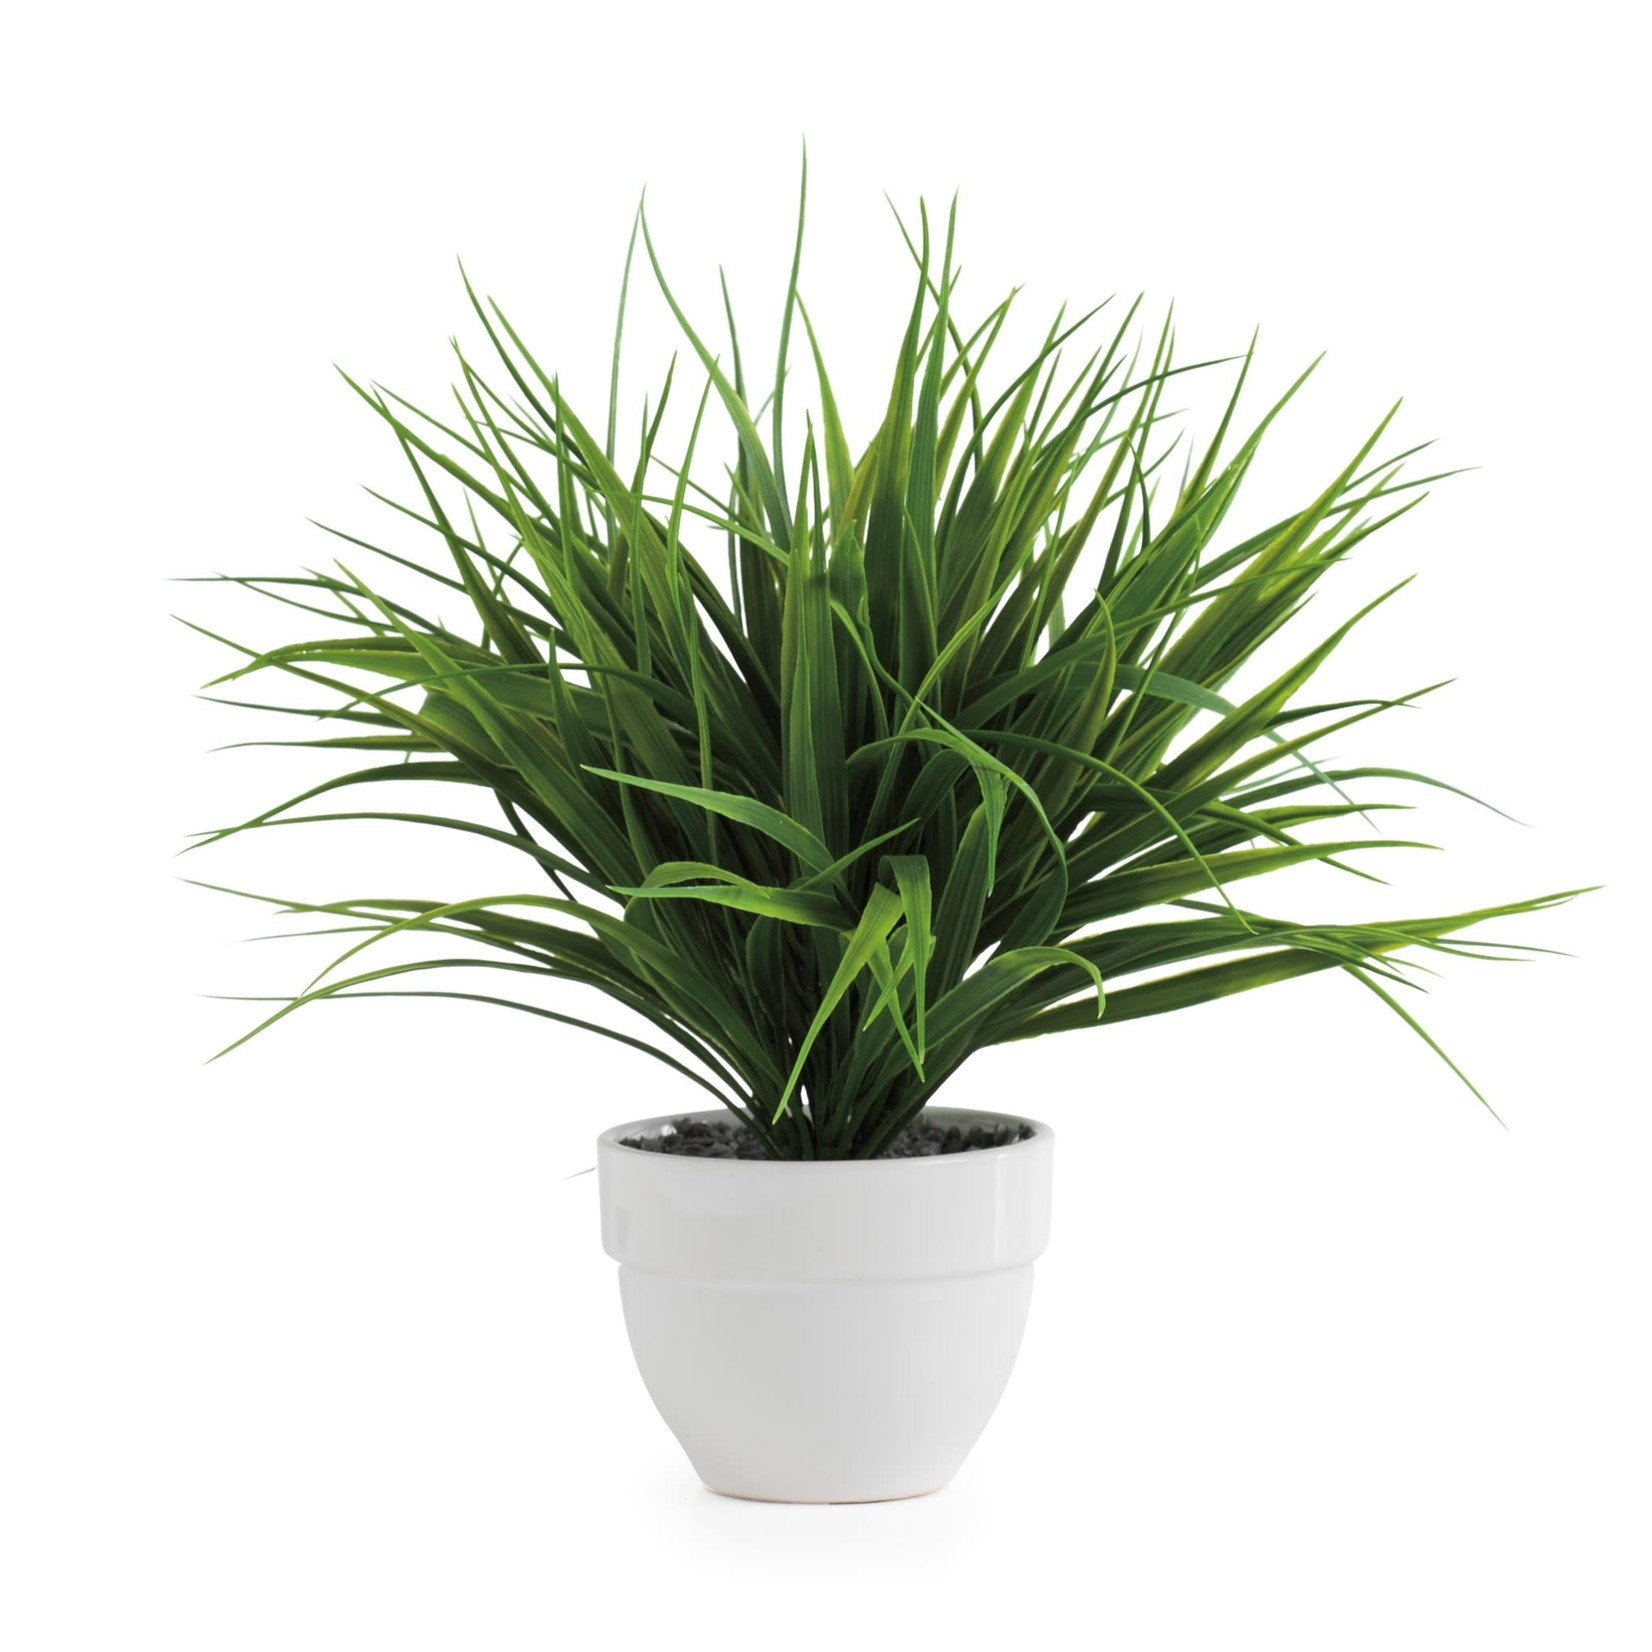 Torre & Tagus Grass Potted Plant